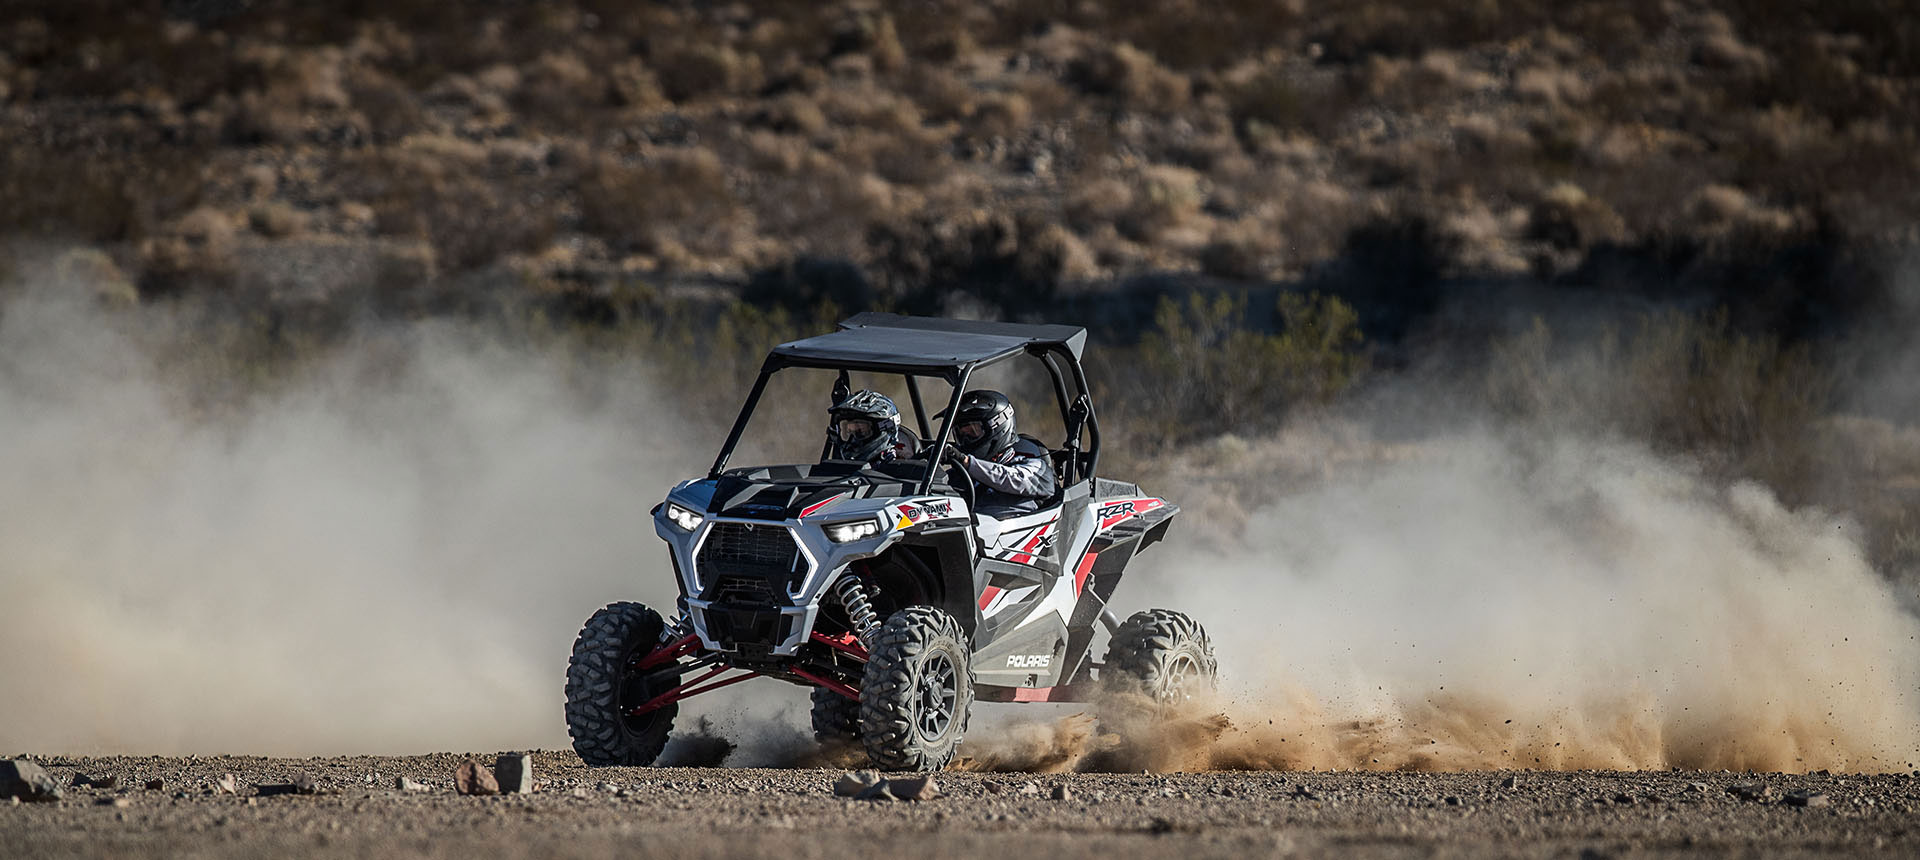 2019 Polaris RZR XP 1000 in Katy, Texas - Photo 7